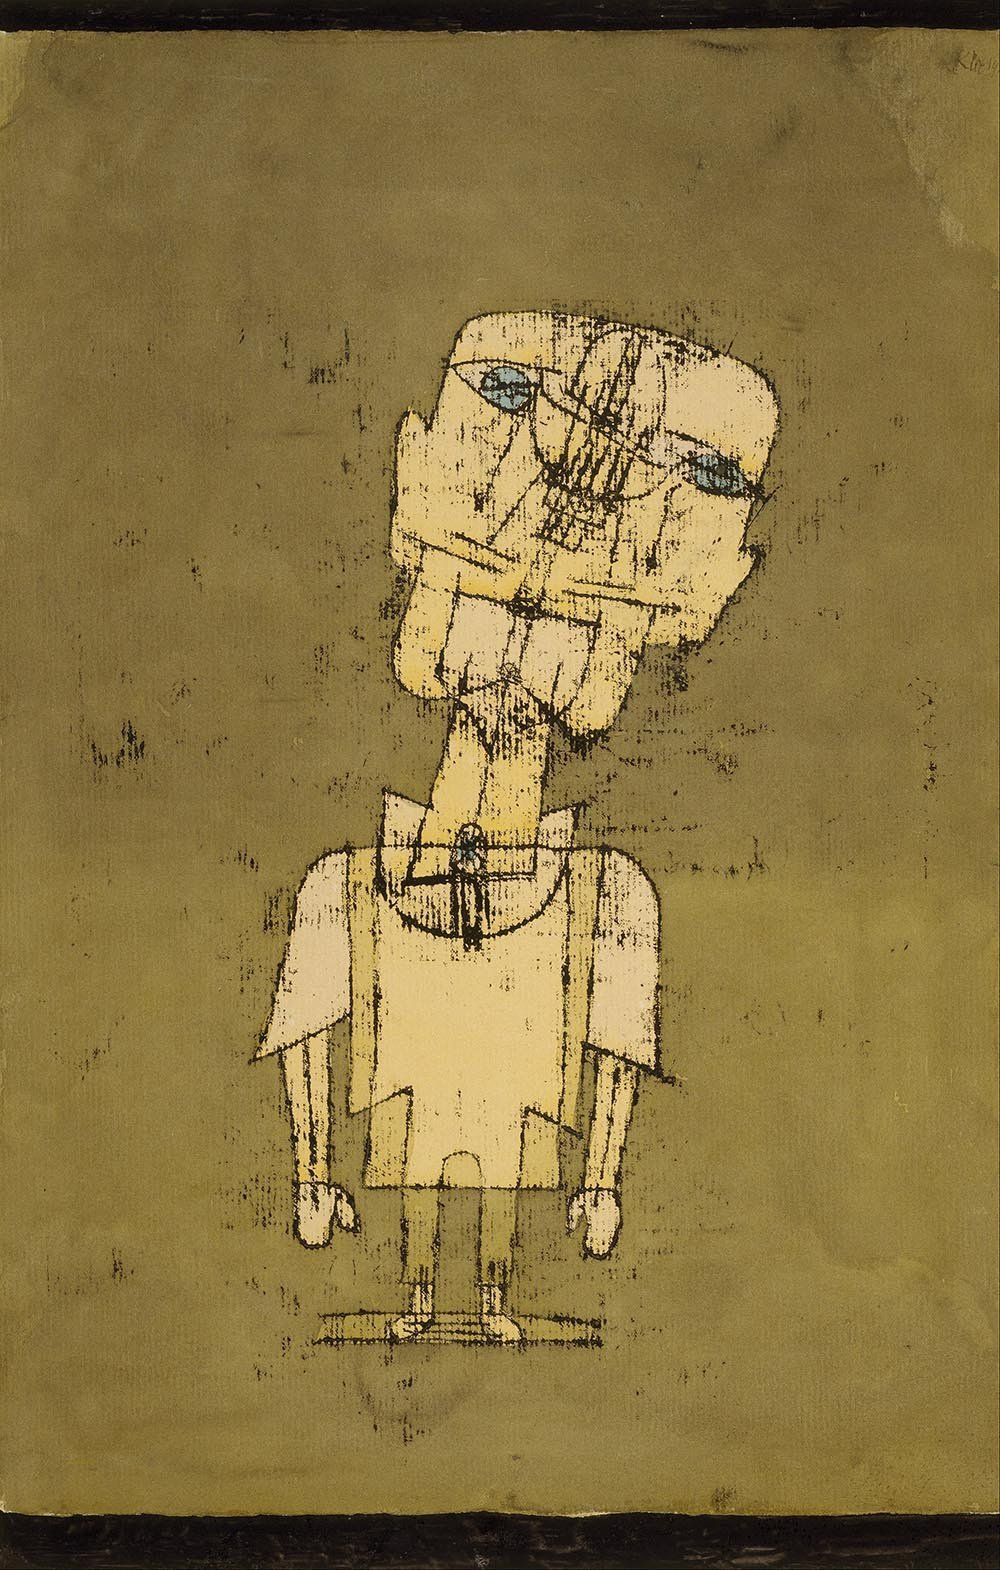 100% Hand Painted Oil on Canvas - Paul Klee - Ghost of a Genius - 30x40 Inch